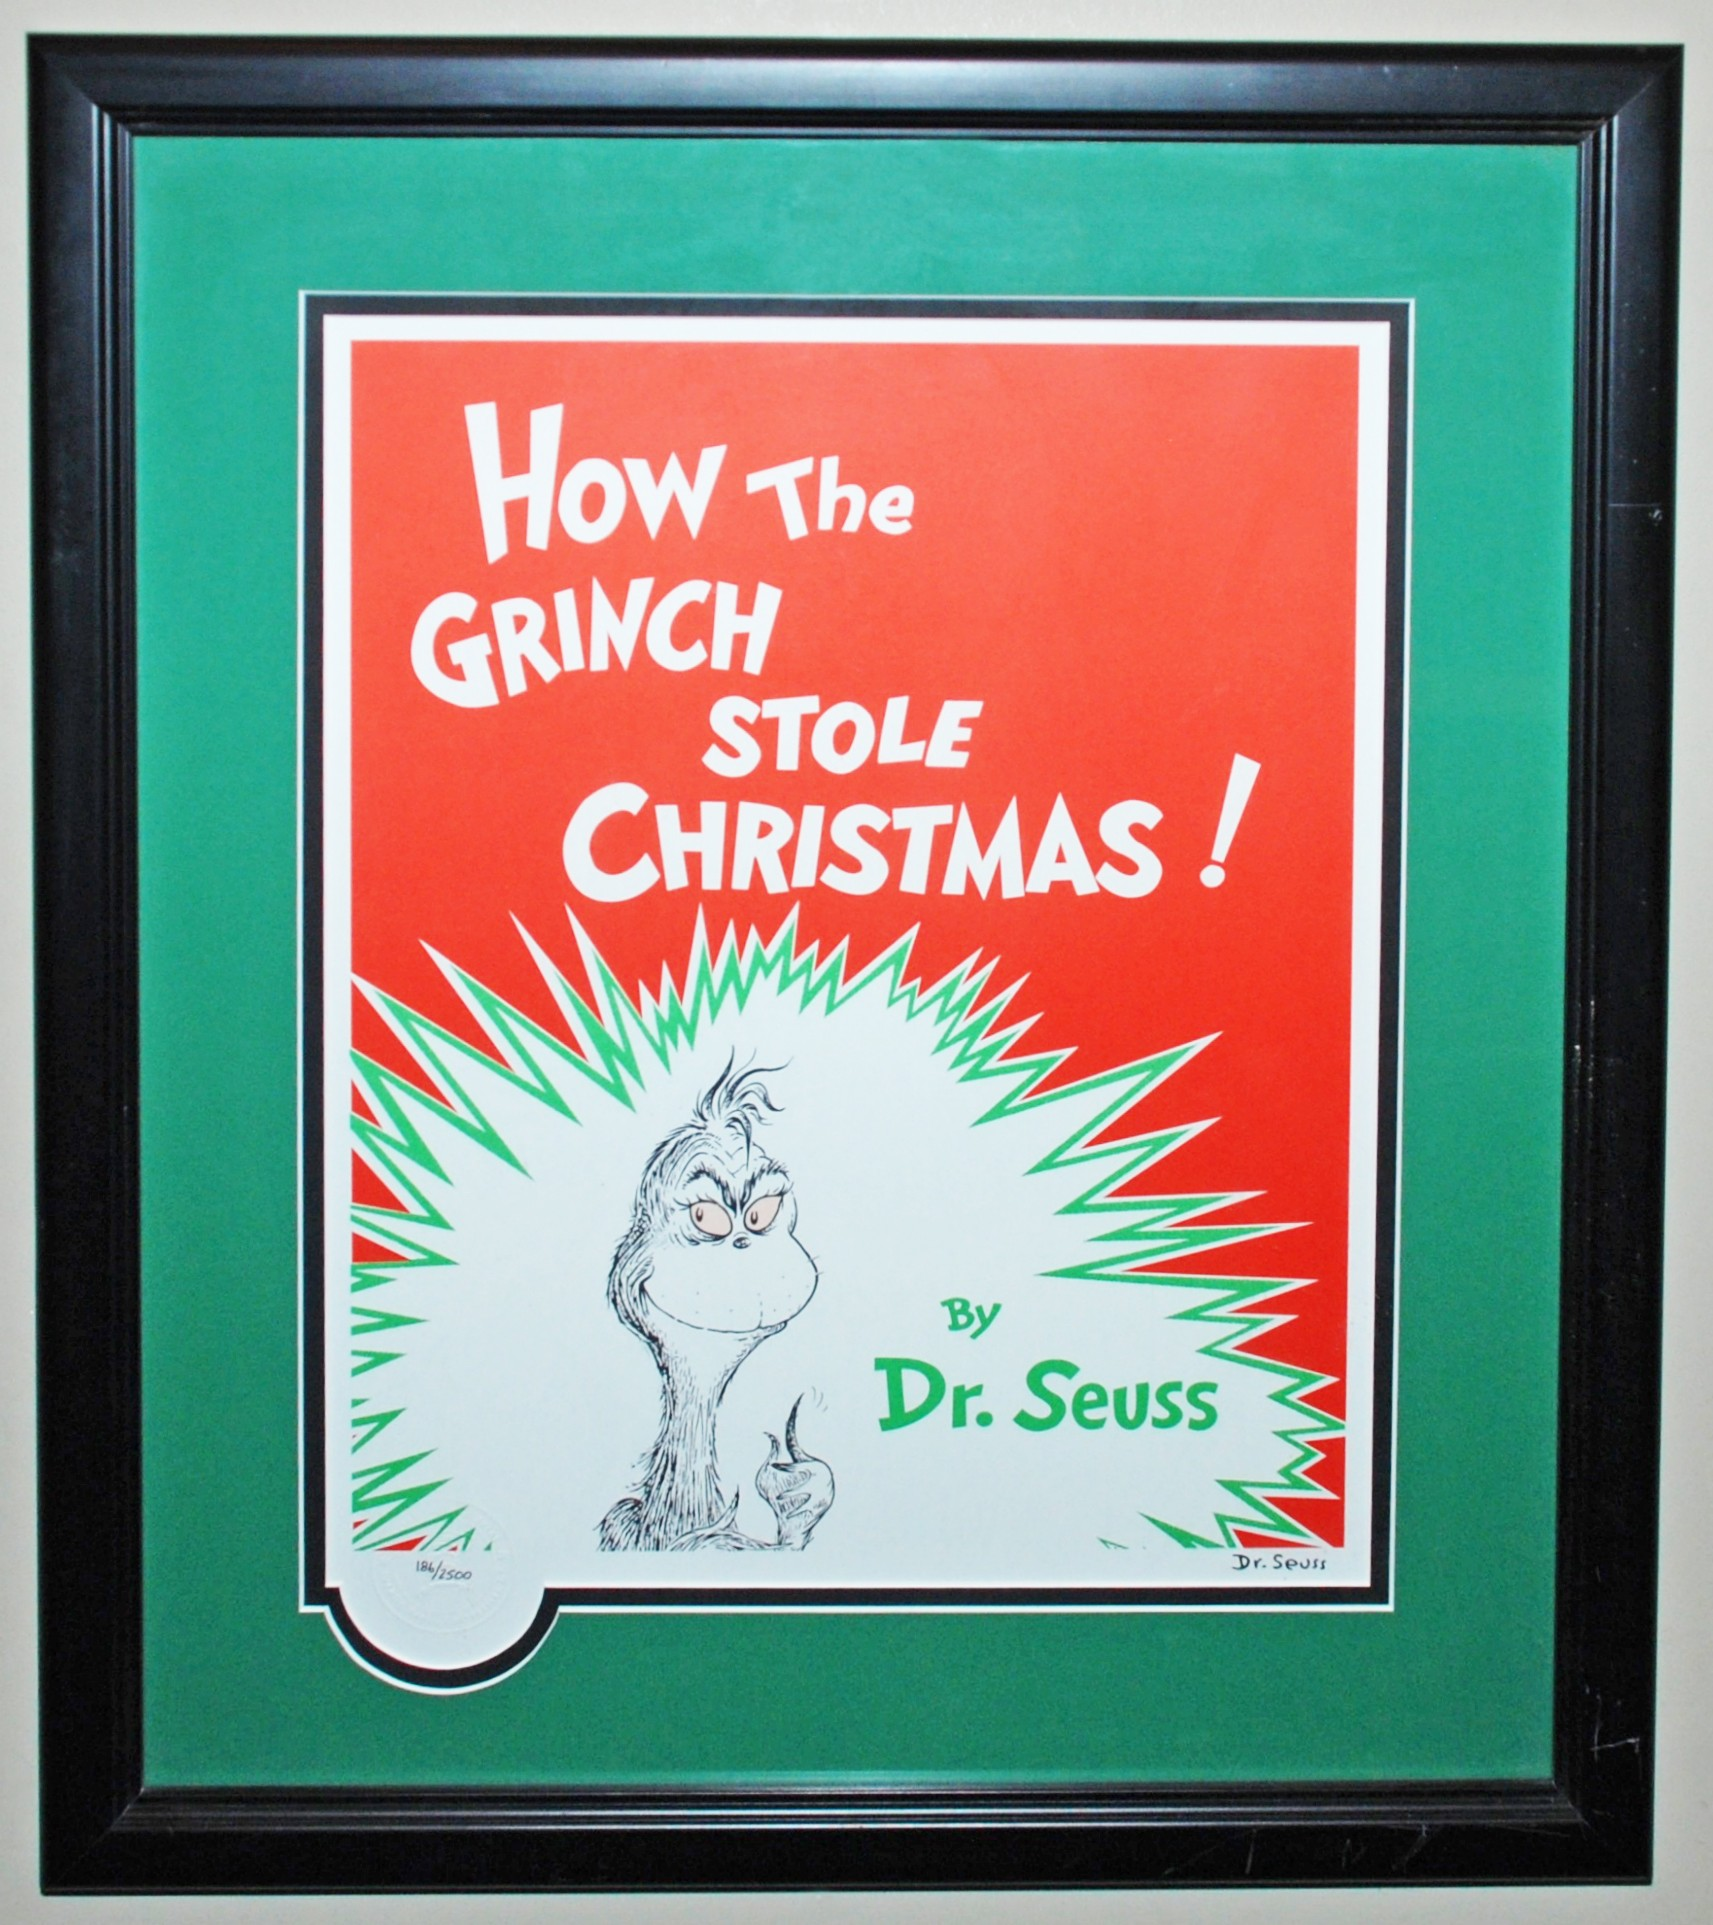 How The Grinch Stole Christmas Book Cover.The Grinch Animation Sensations